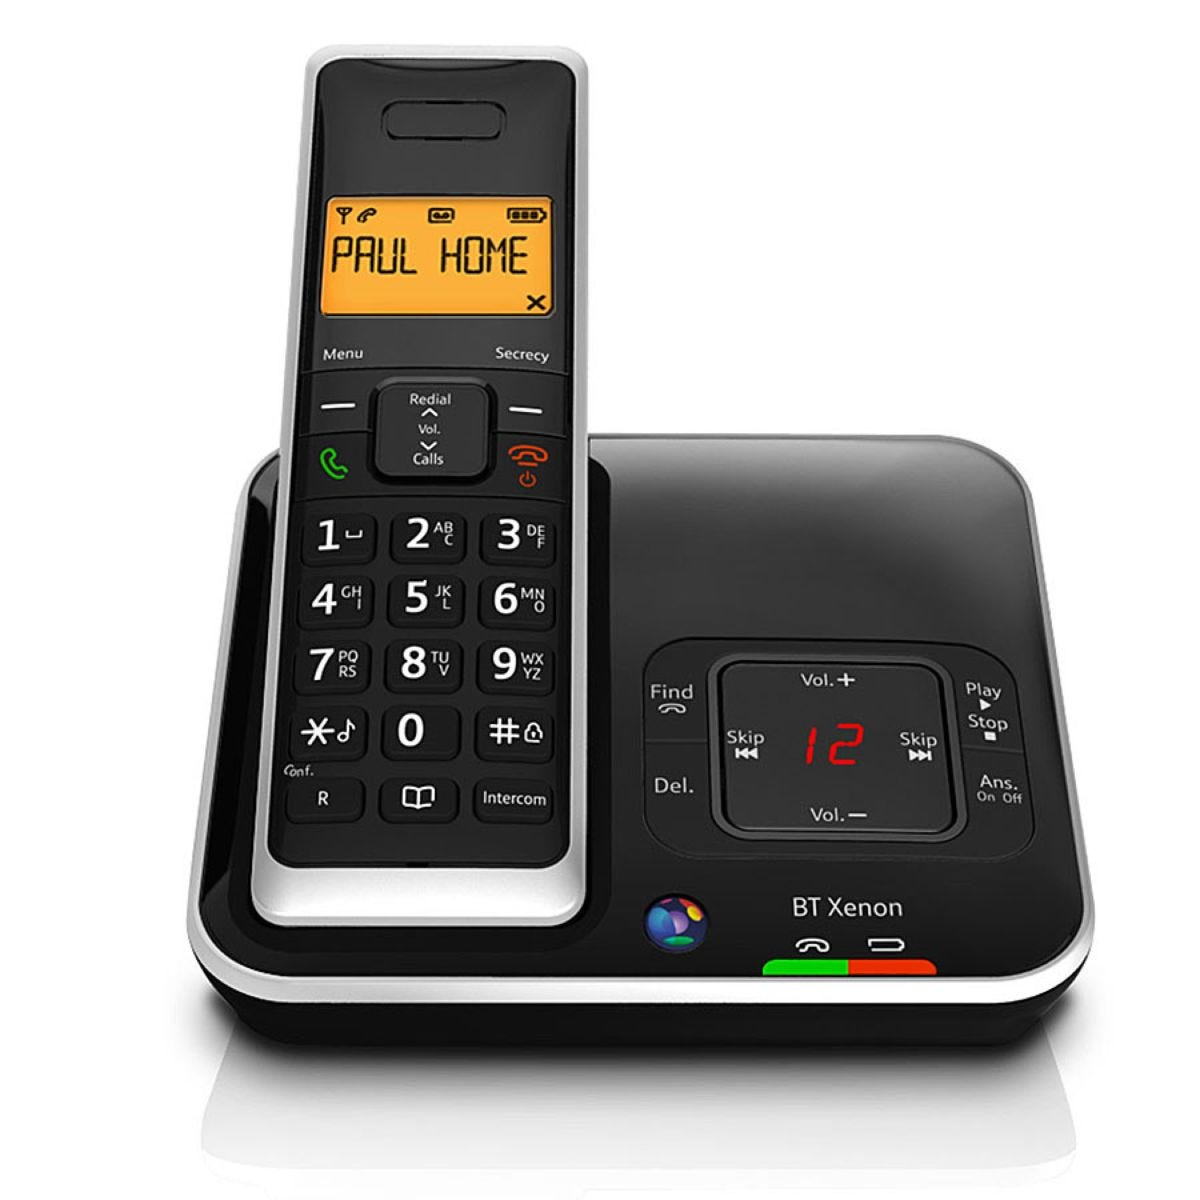 BT Xenon 1500 Cordless Telephone with Answering Machine - Single Handset | Robert Dyas